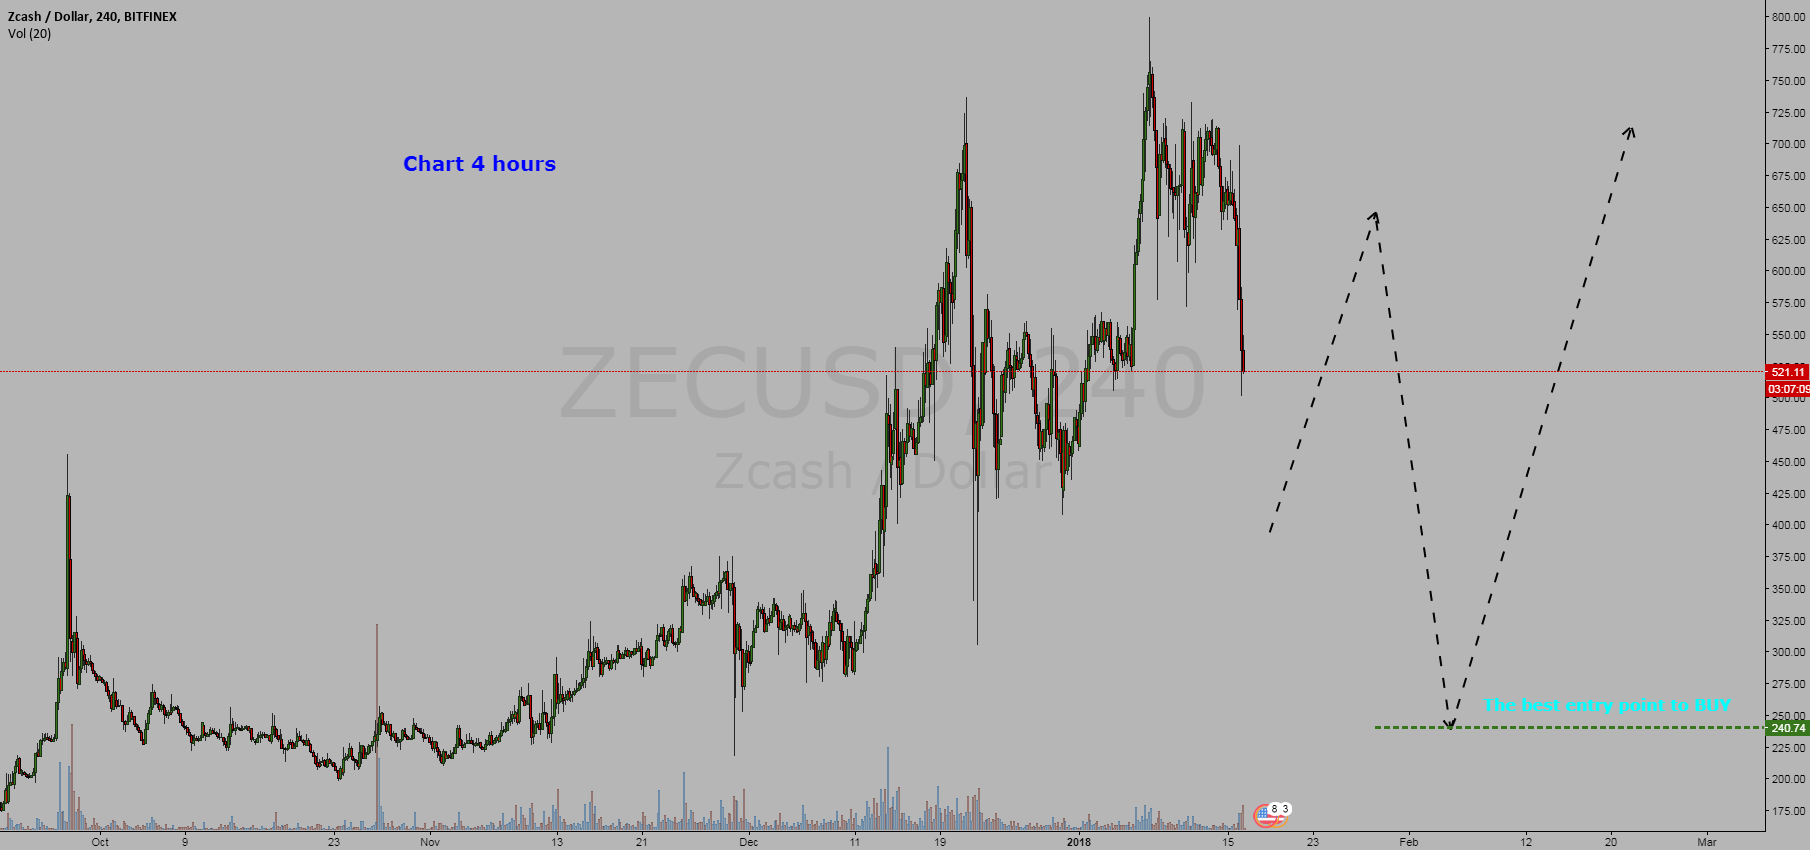 Cryptocurrency Zcash / Dollar = BUY